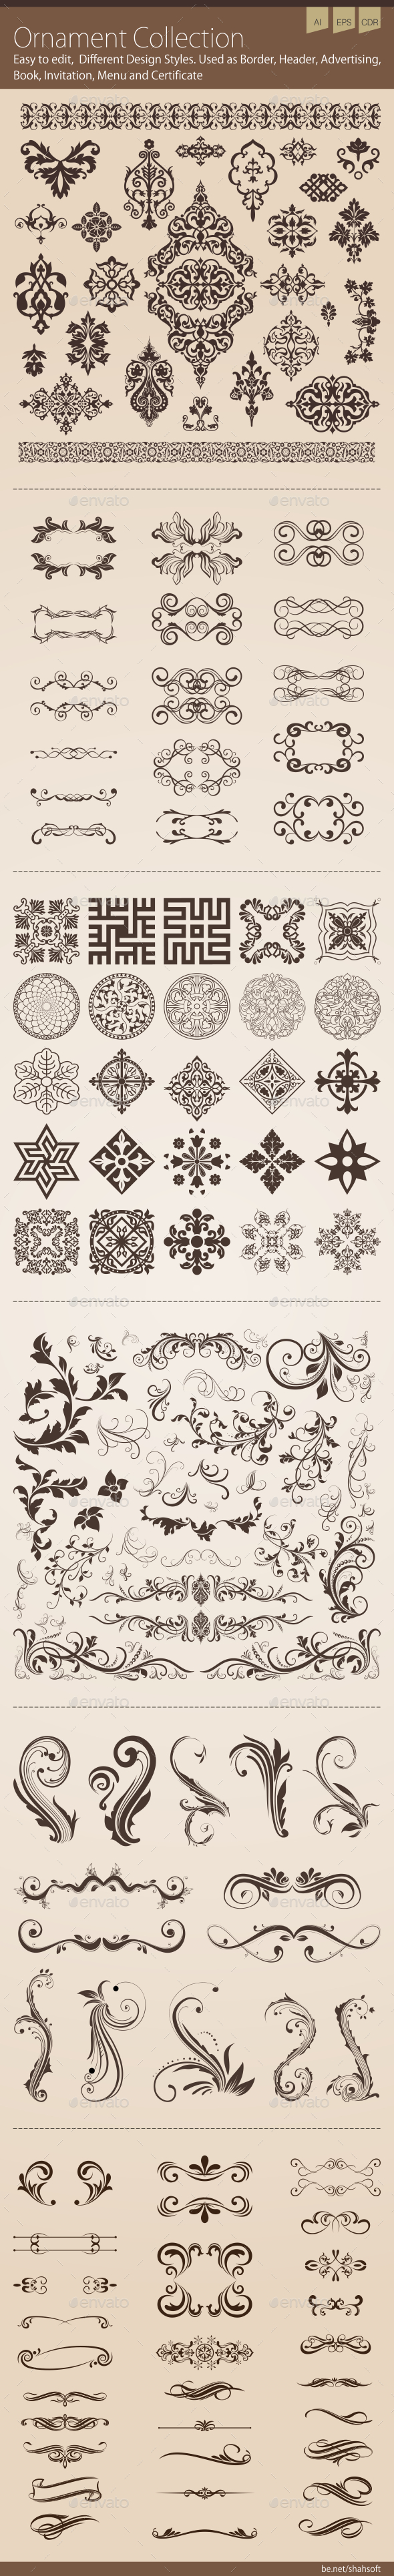 Ornament Collection - Flourishes / Swirls Decorative